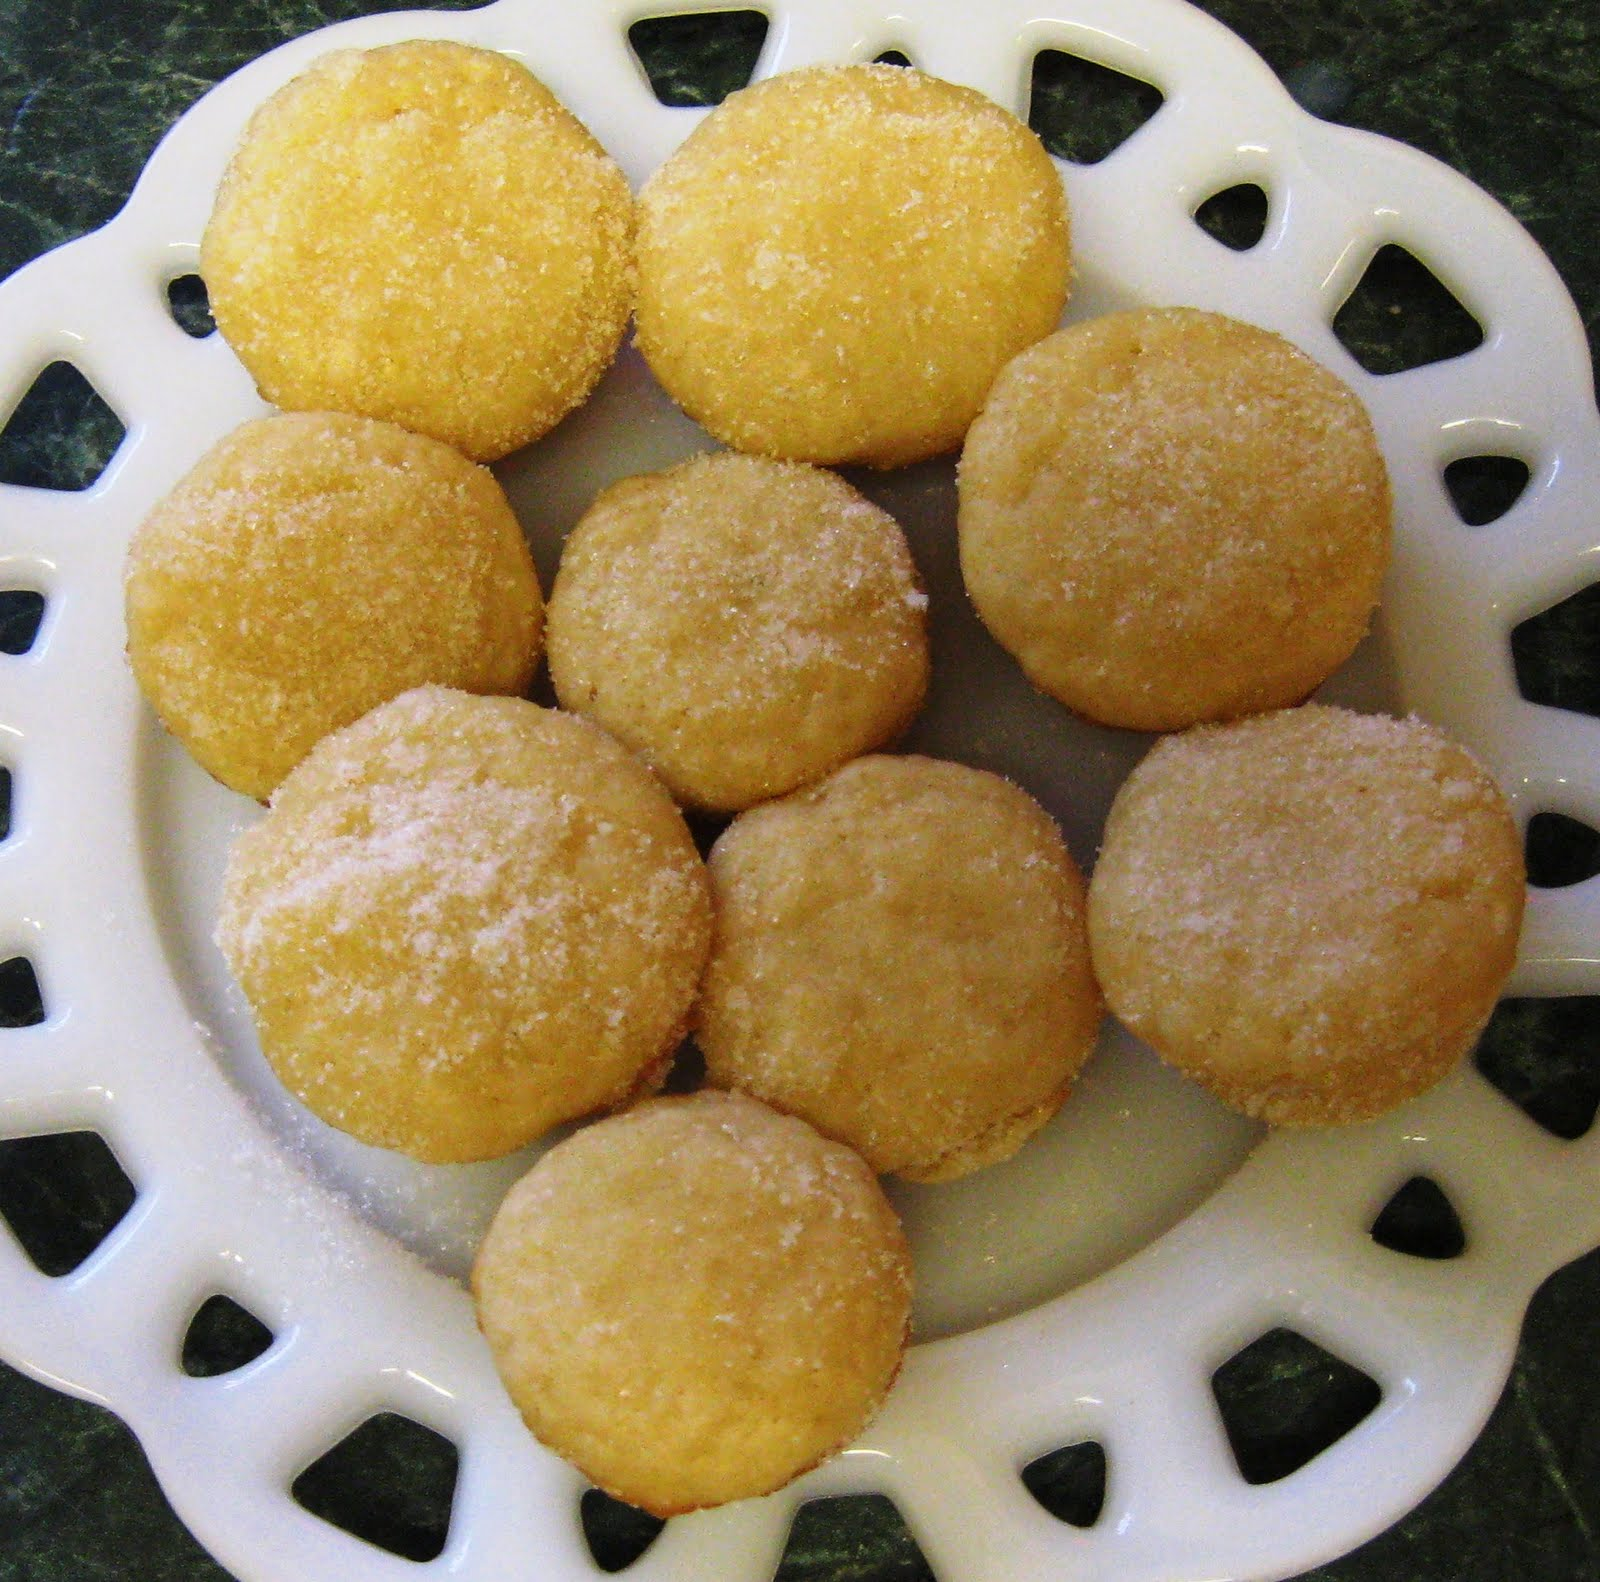 Lemon+Yogurt+Muffins.JPG